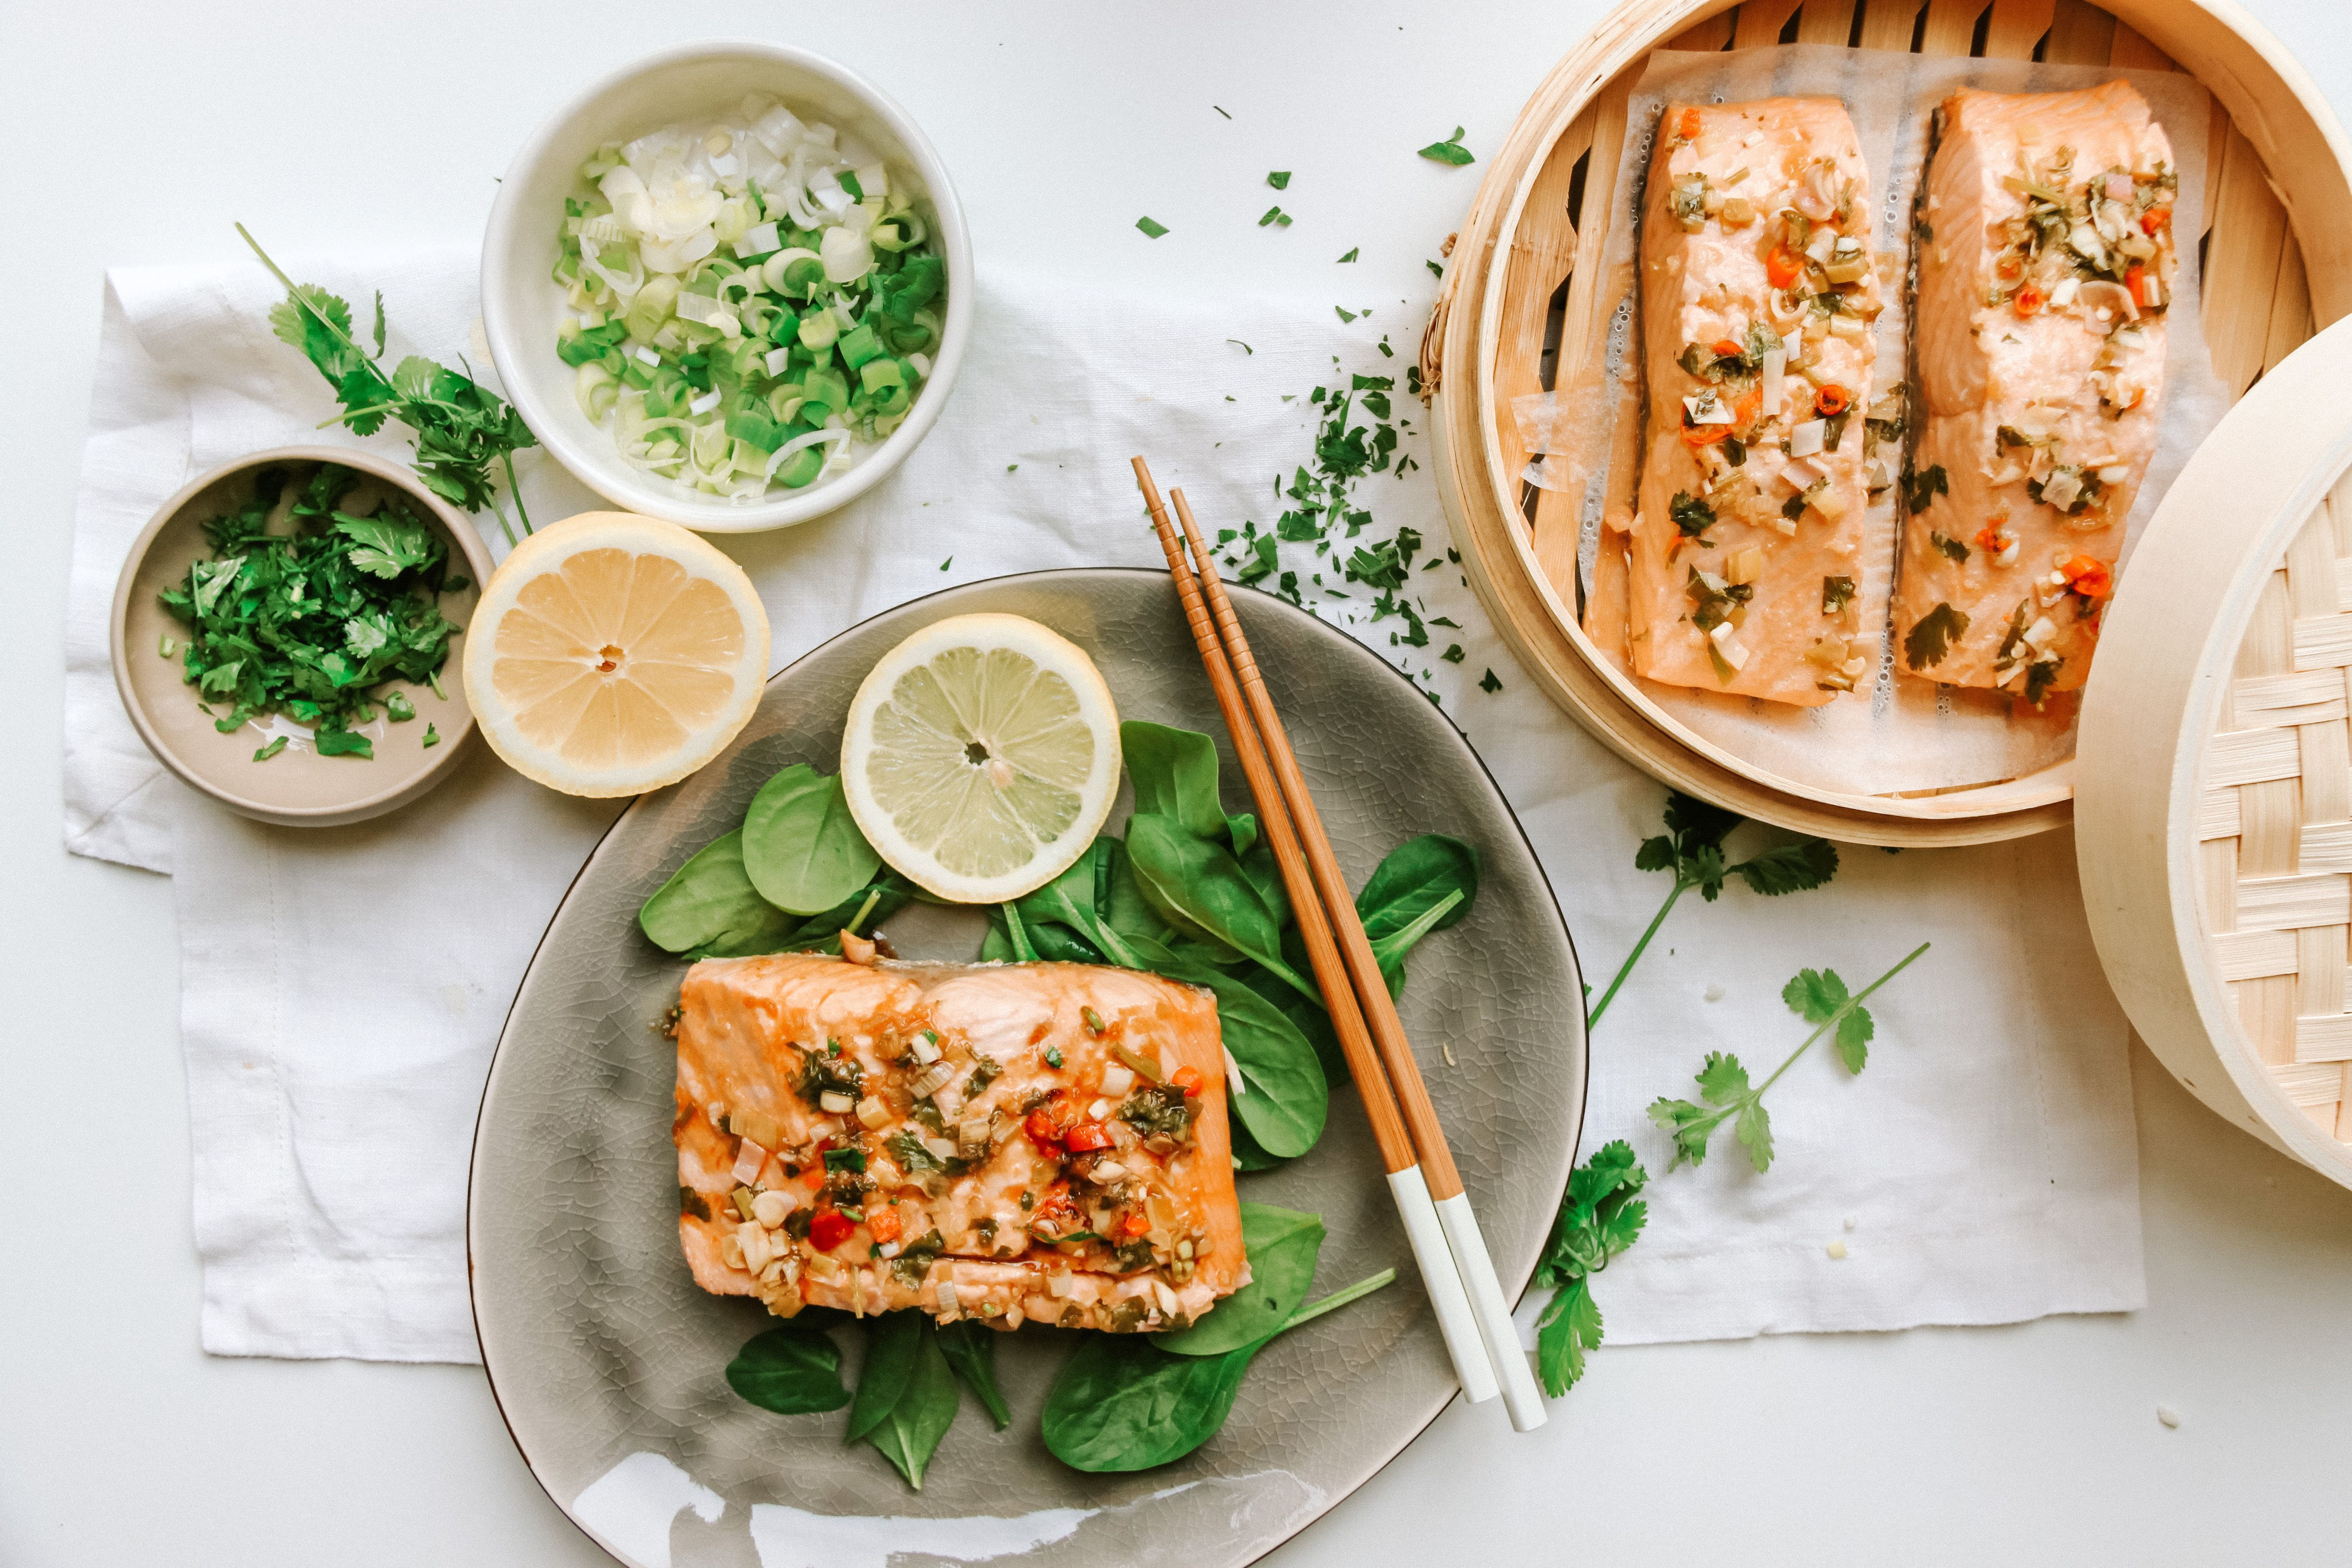 Steamed Chili Lime Salmon:  Switch up your salmon game with this super delicious and easy recipe! A little sweet but so refreshing! Perfect light lunch!  . . #salmon #lunch #seafood #healthy #healthylunch #goodeats #pescatarianrecipes #chili #lime #summerfood #diet #healthyrecipes